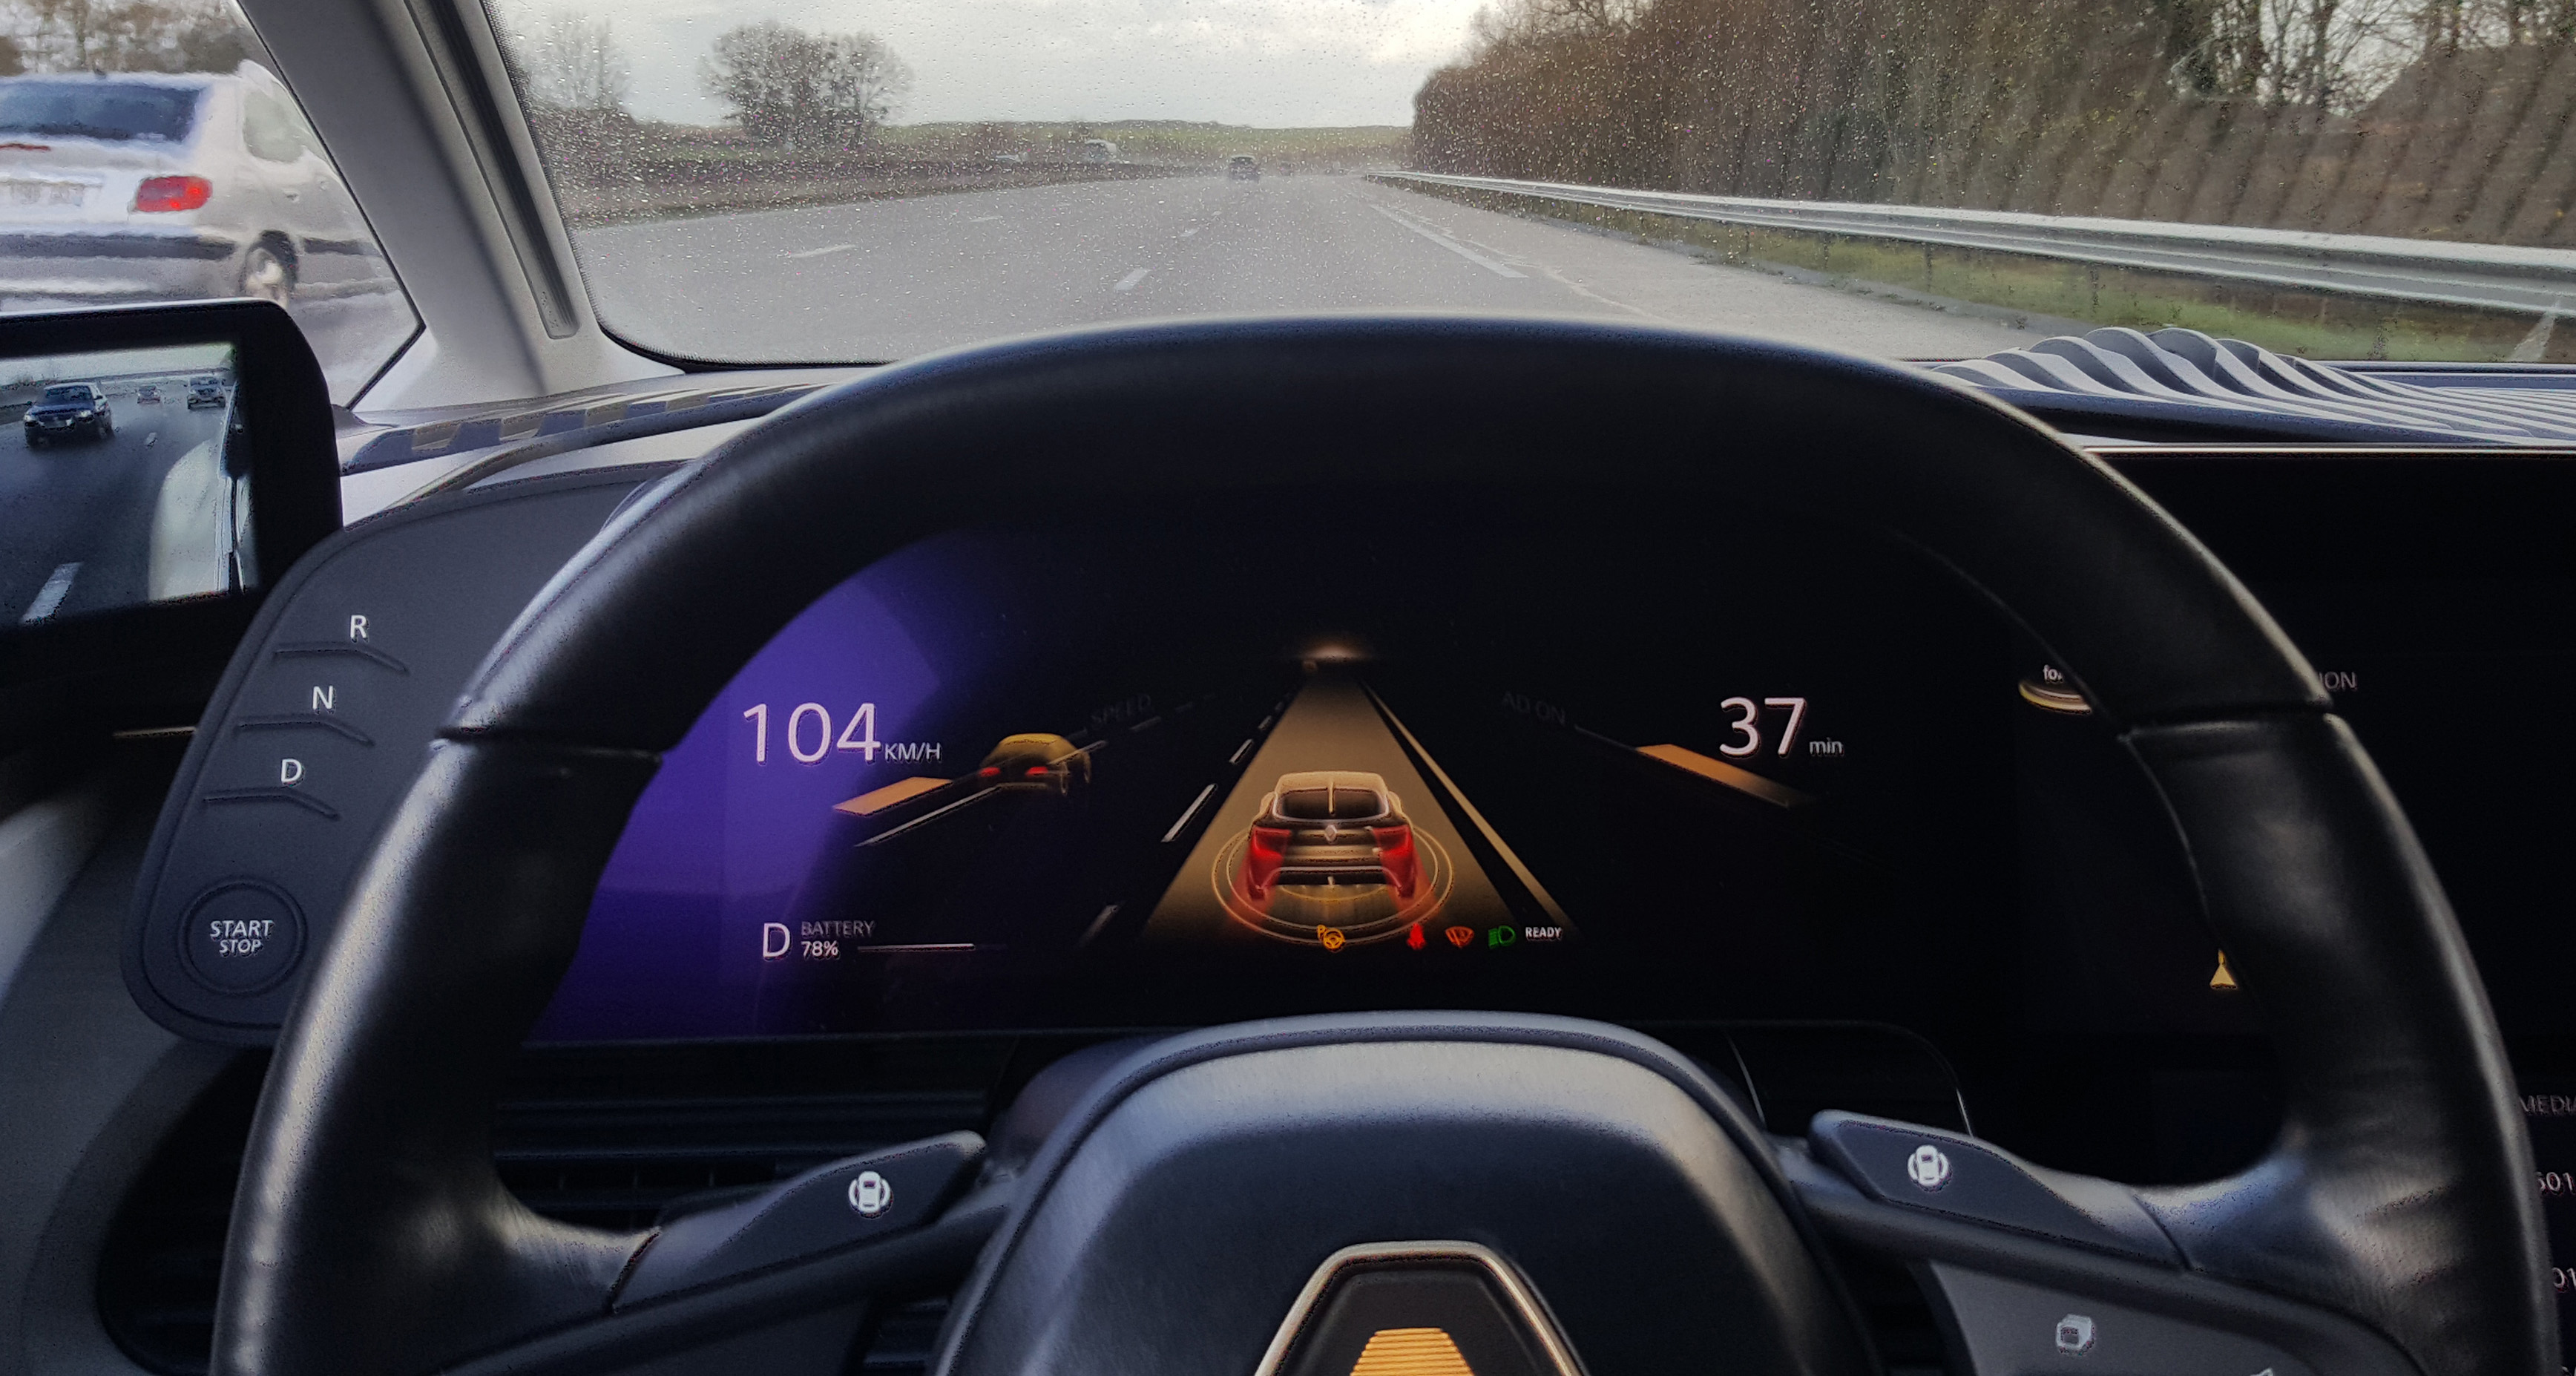 Cruising With No Hands At 80 Mph In Renault S Autonomous Car Bloomberg